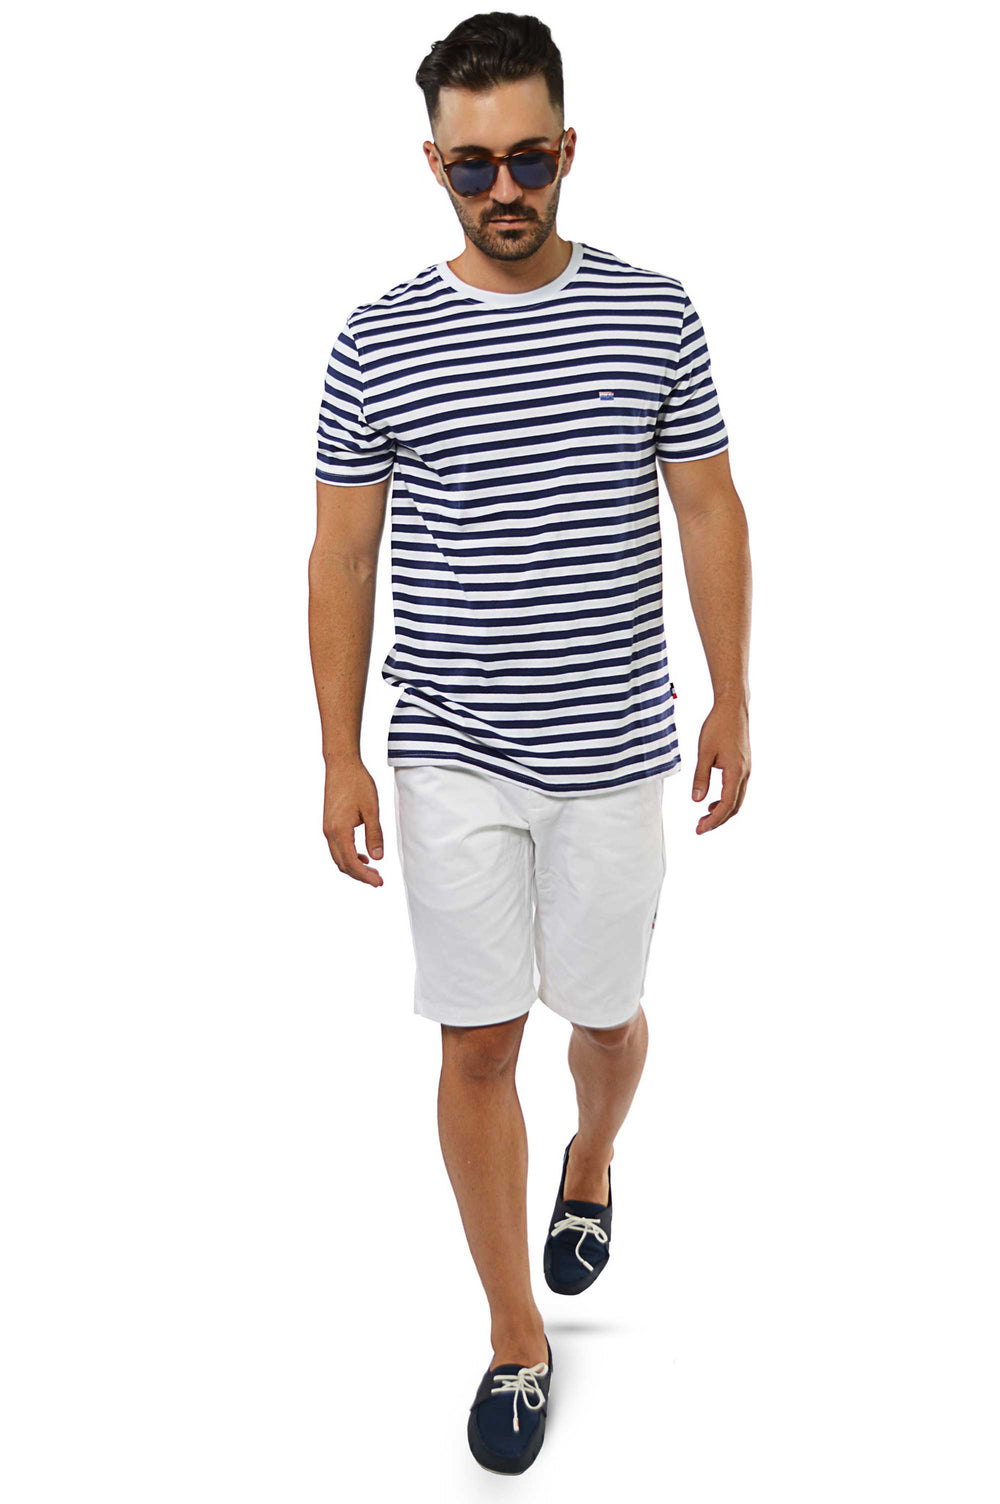 walking wearing navy stripe t-shirt with white shorts